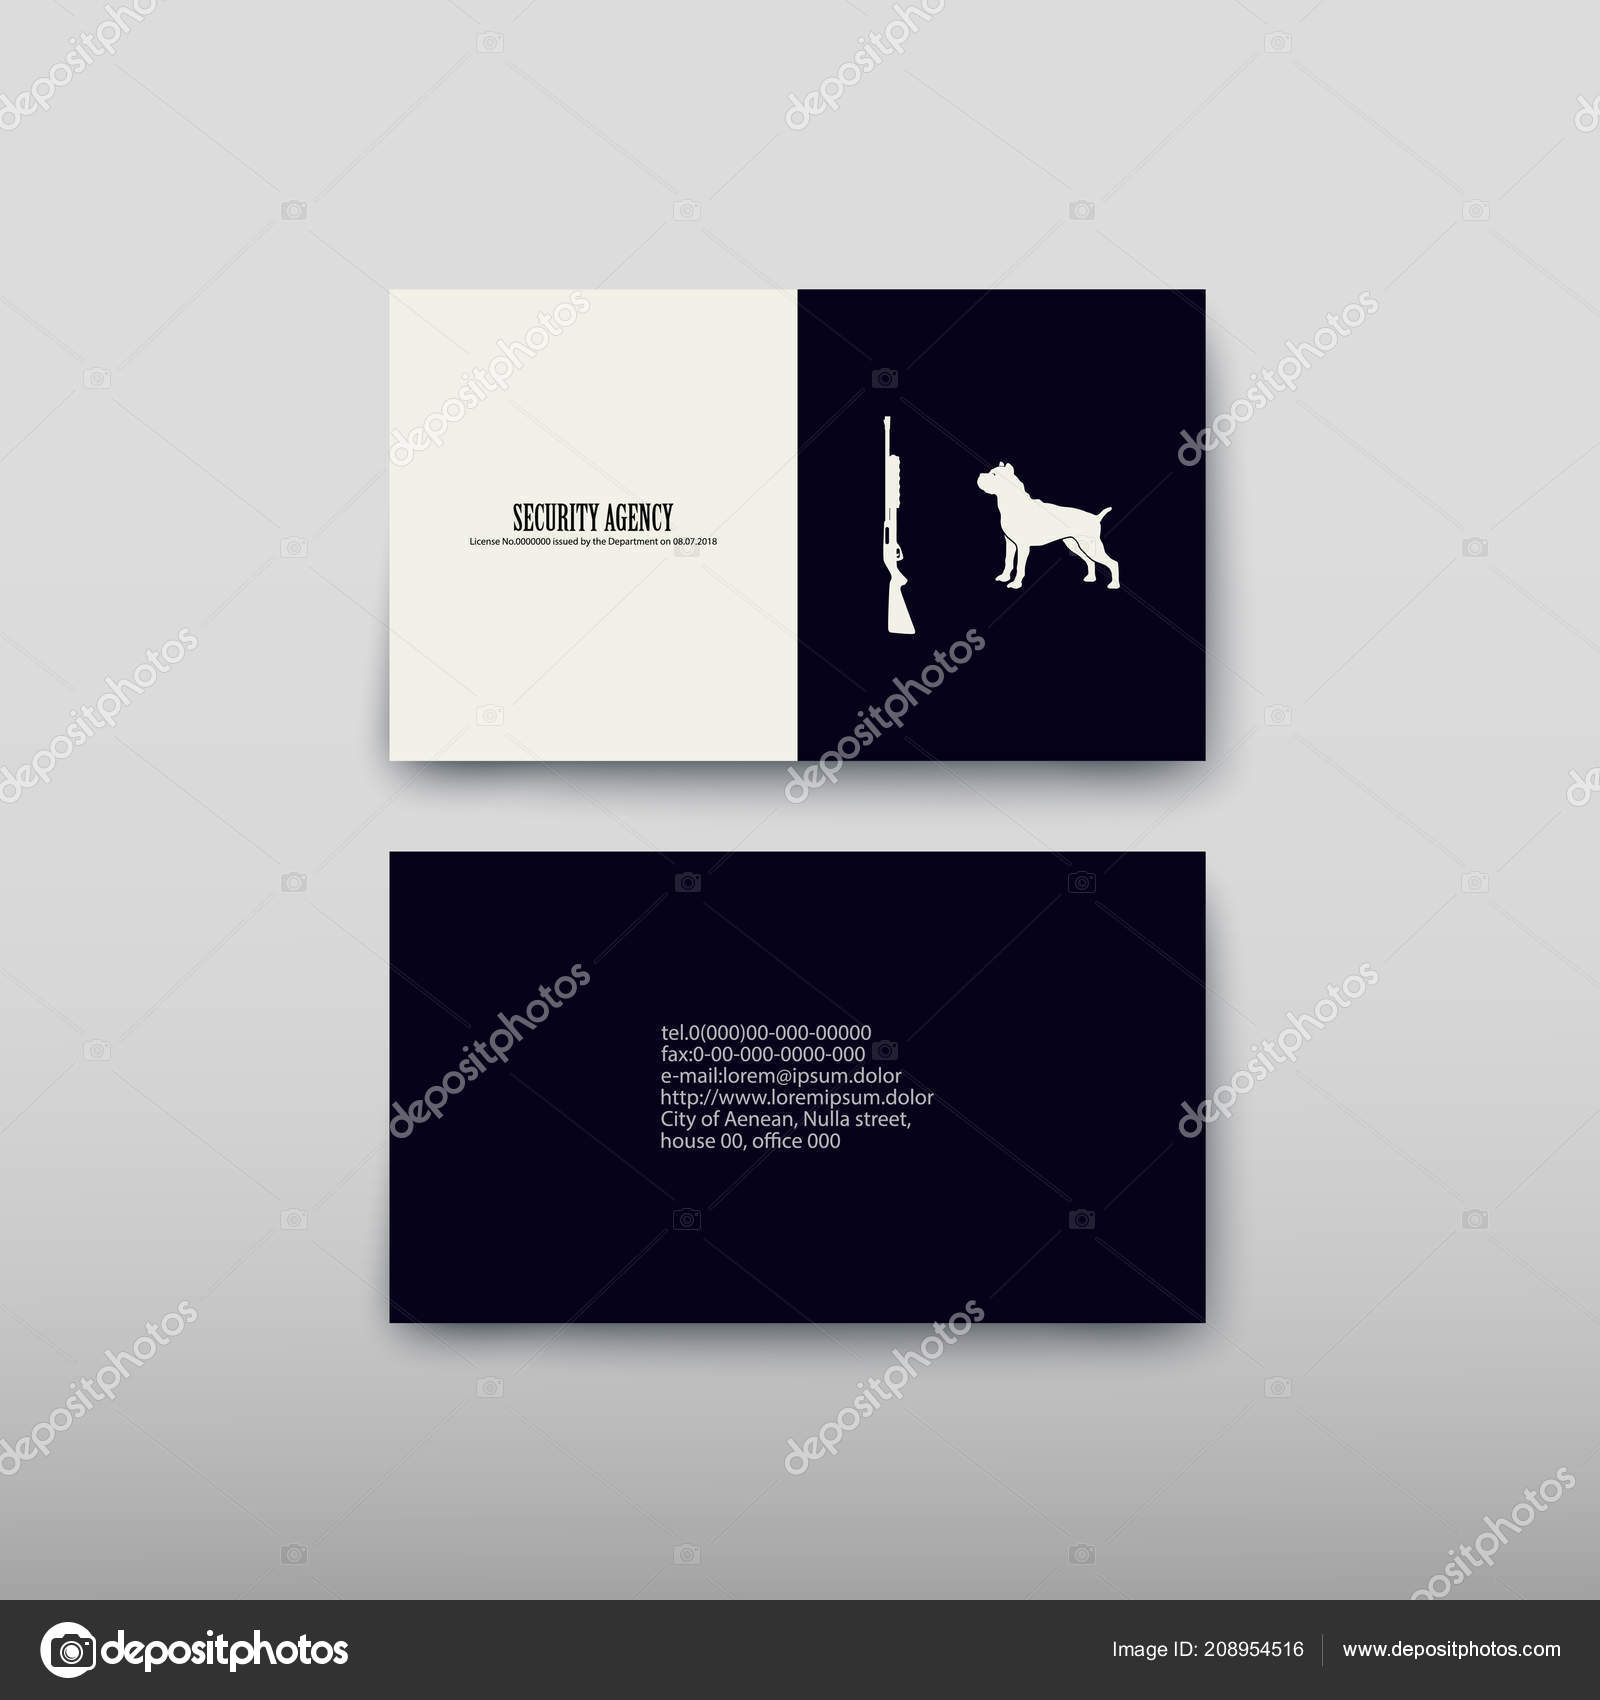 Business Card Containing Contact Information Making Easier Find ...